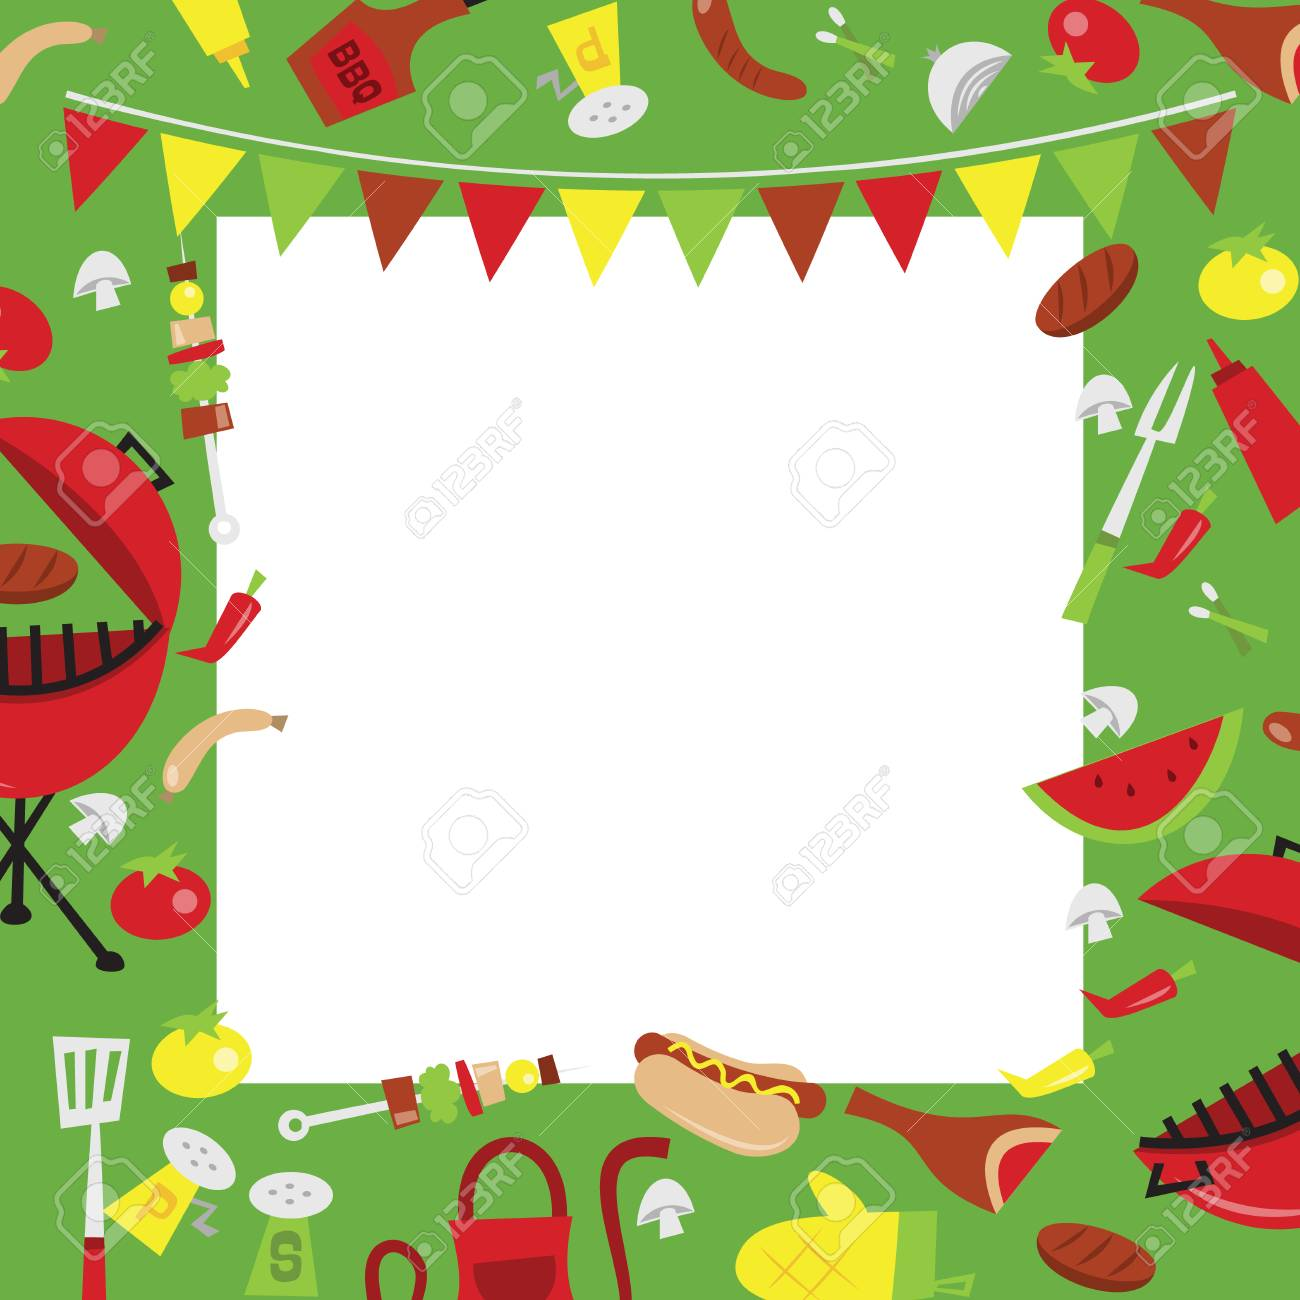 A vector illustration of retro summer barbecue party background.